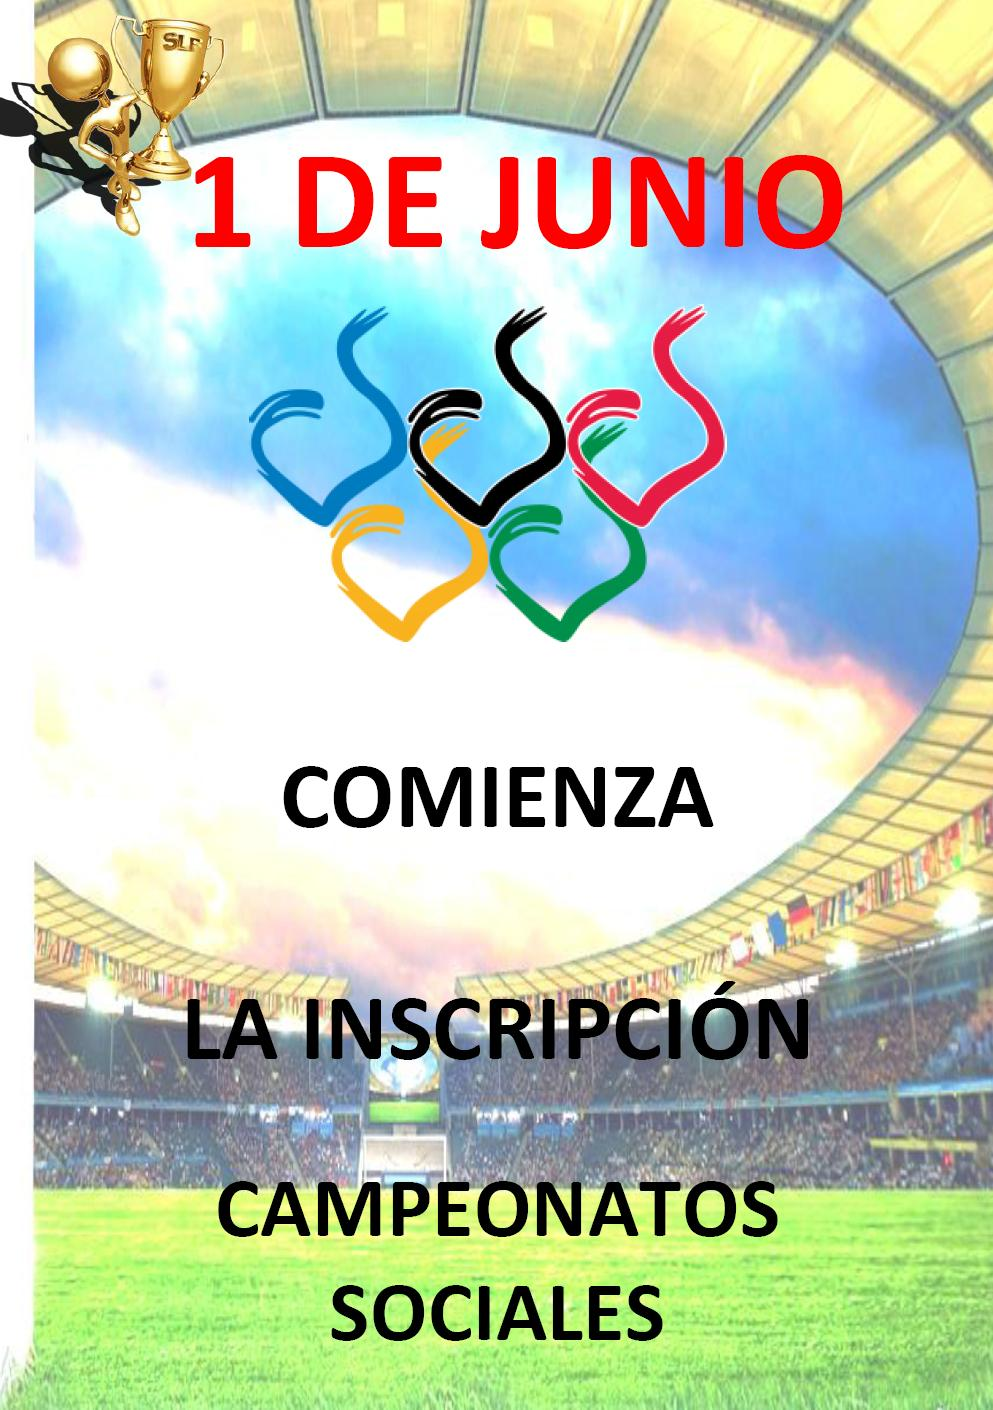 INSCRIPCION CAMPEONATOS SOCIALES